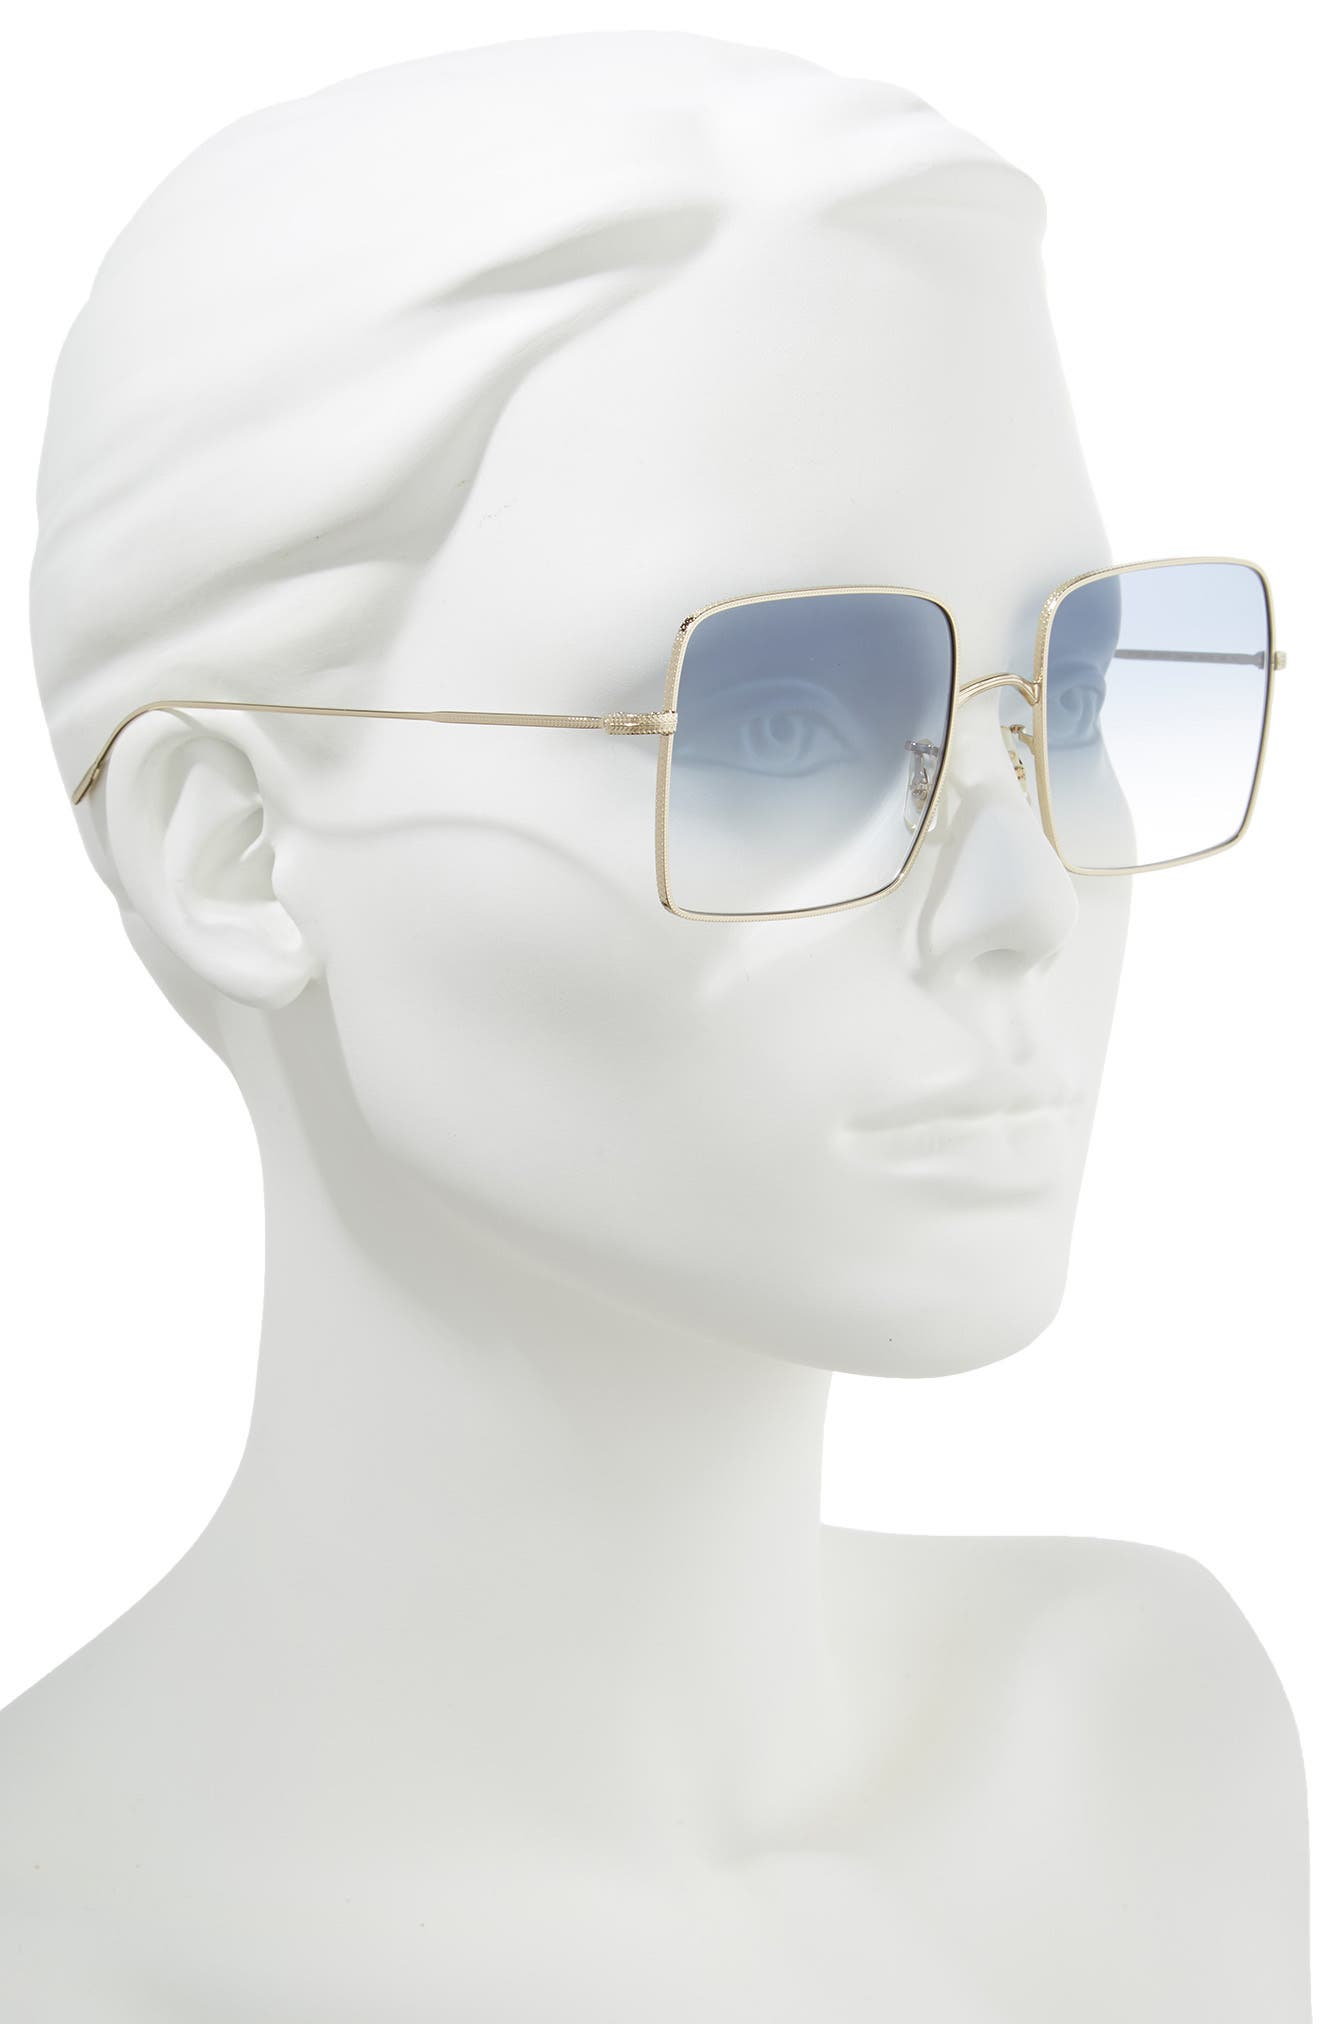 Rassine 56mm Sunglasses,                             Alternate thumbnail 2, color,                             SOFT GOLD BLUE